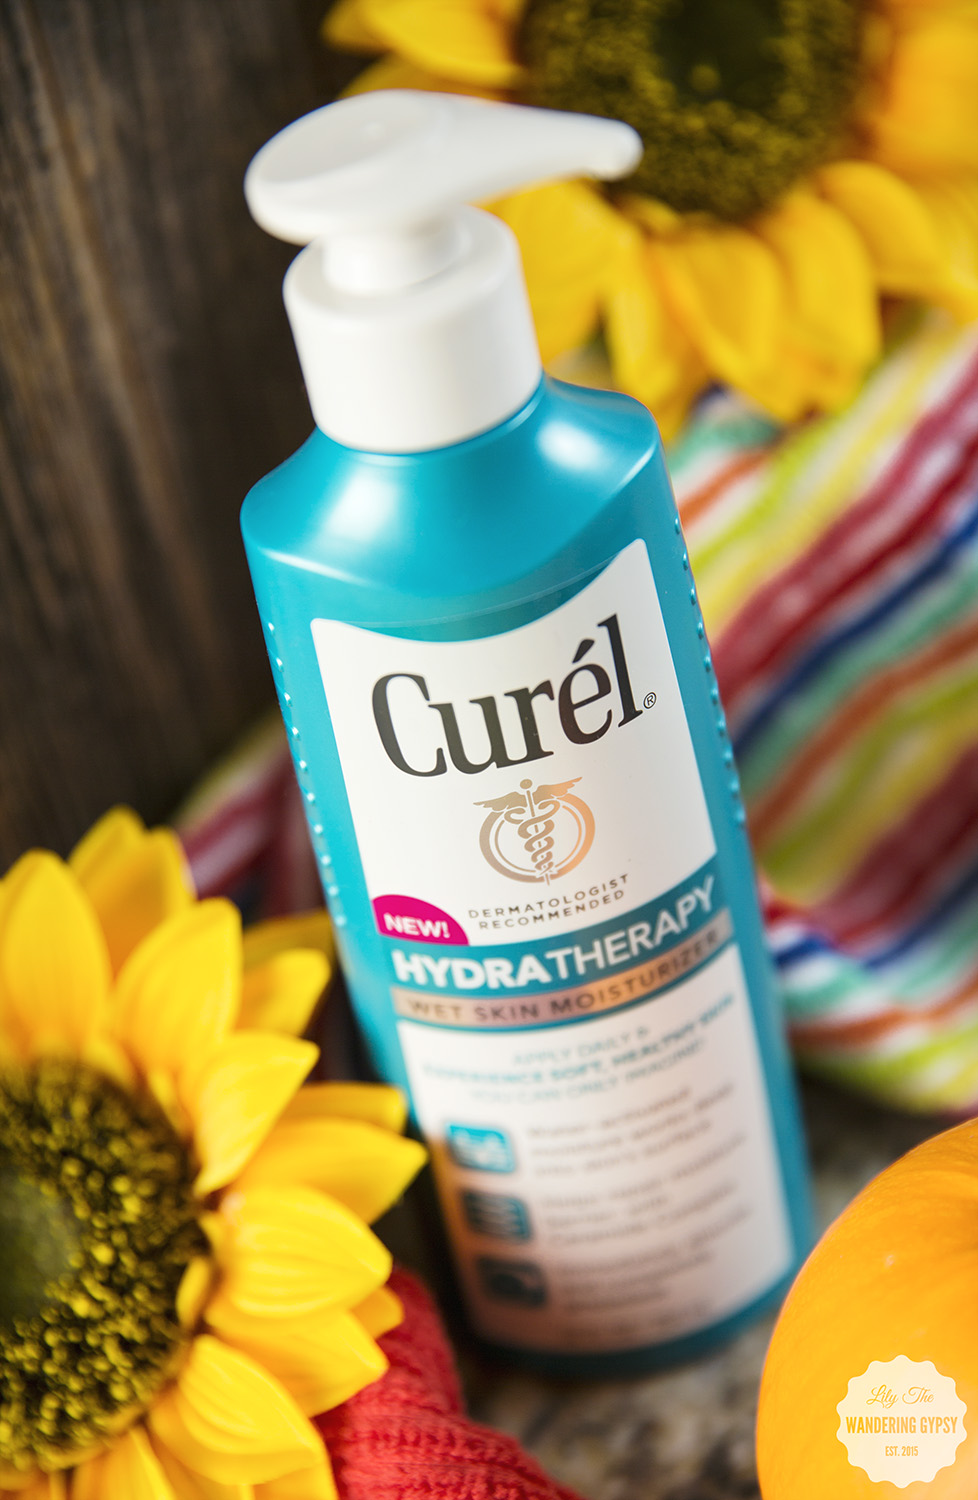 Curel® Advanced Ceramide Complex